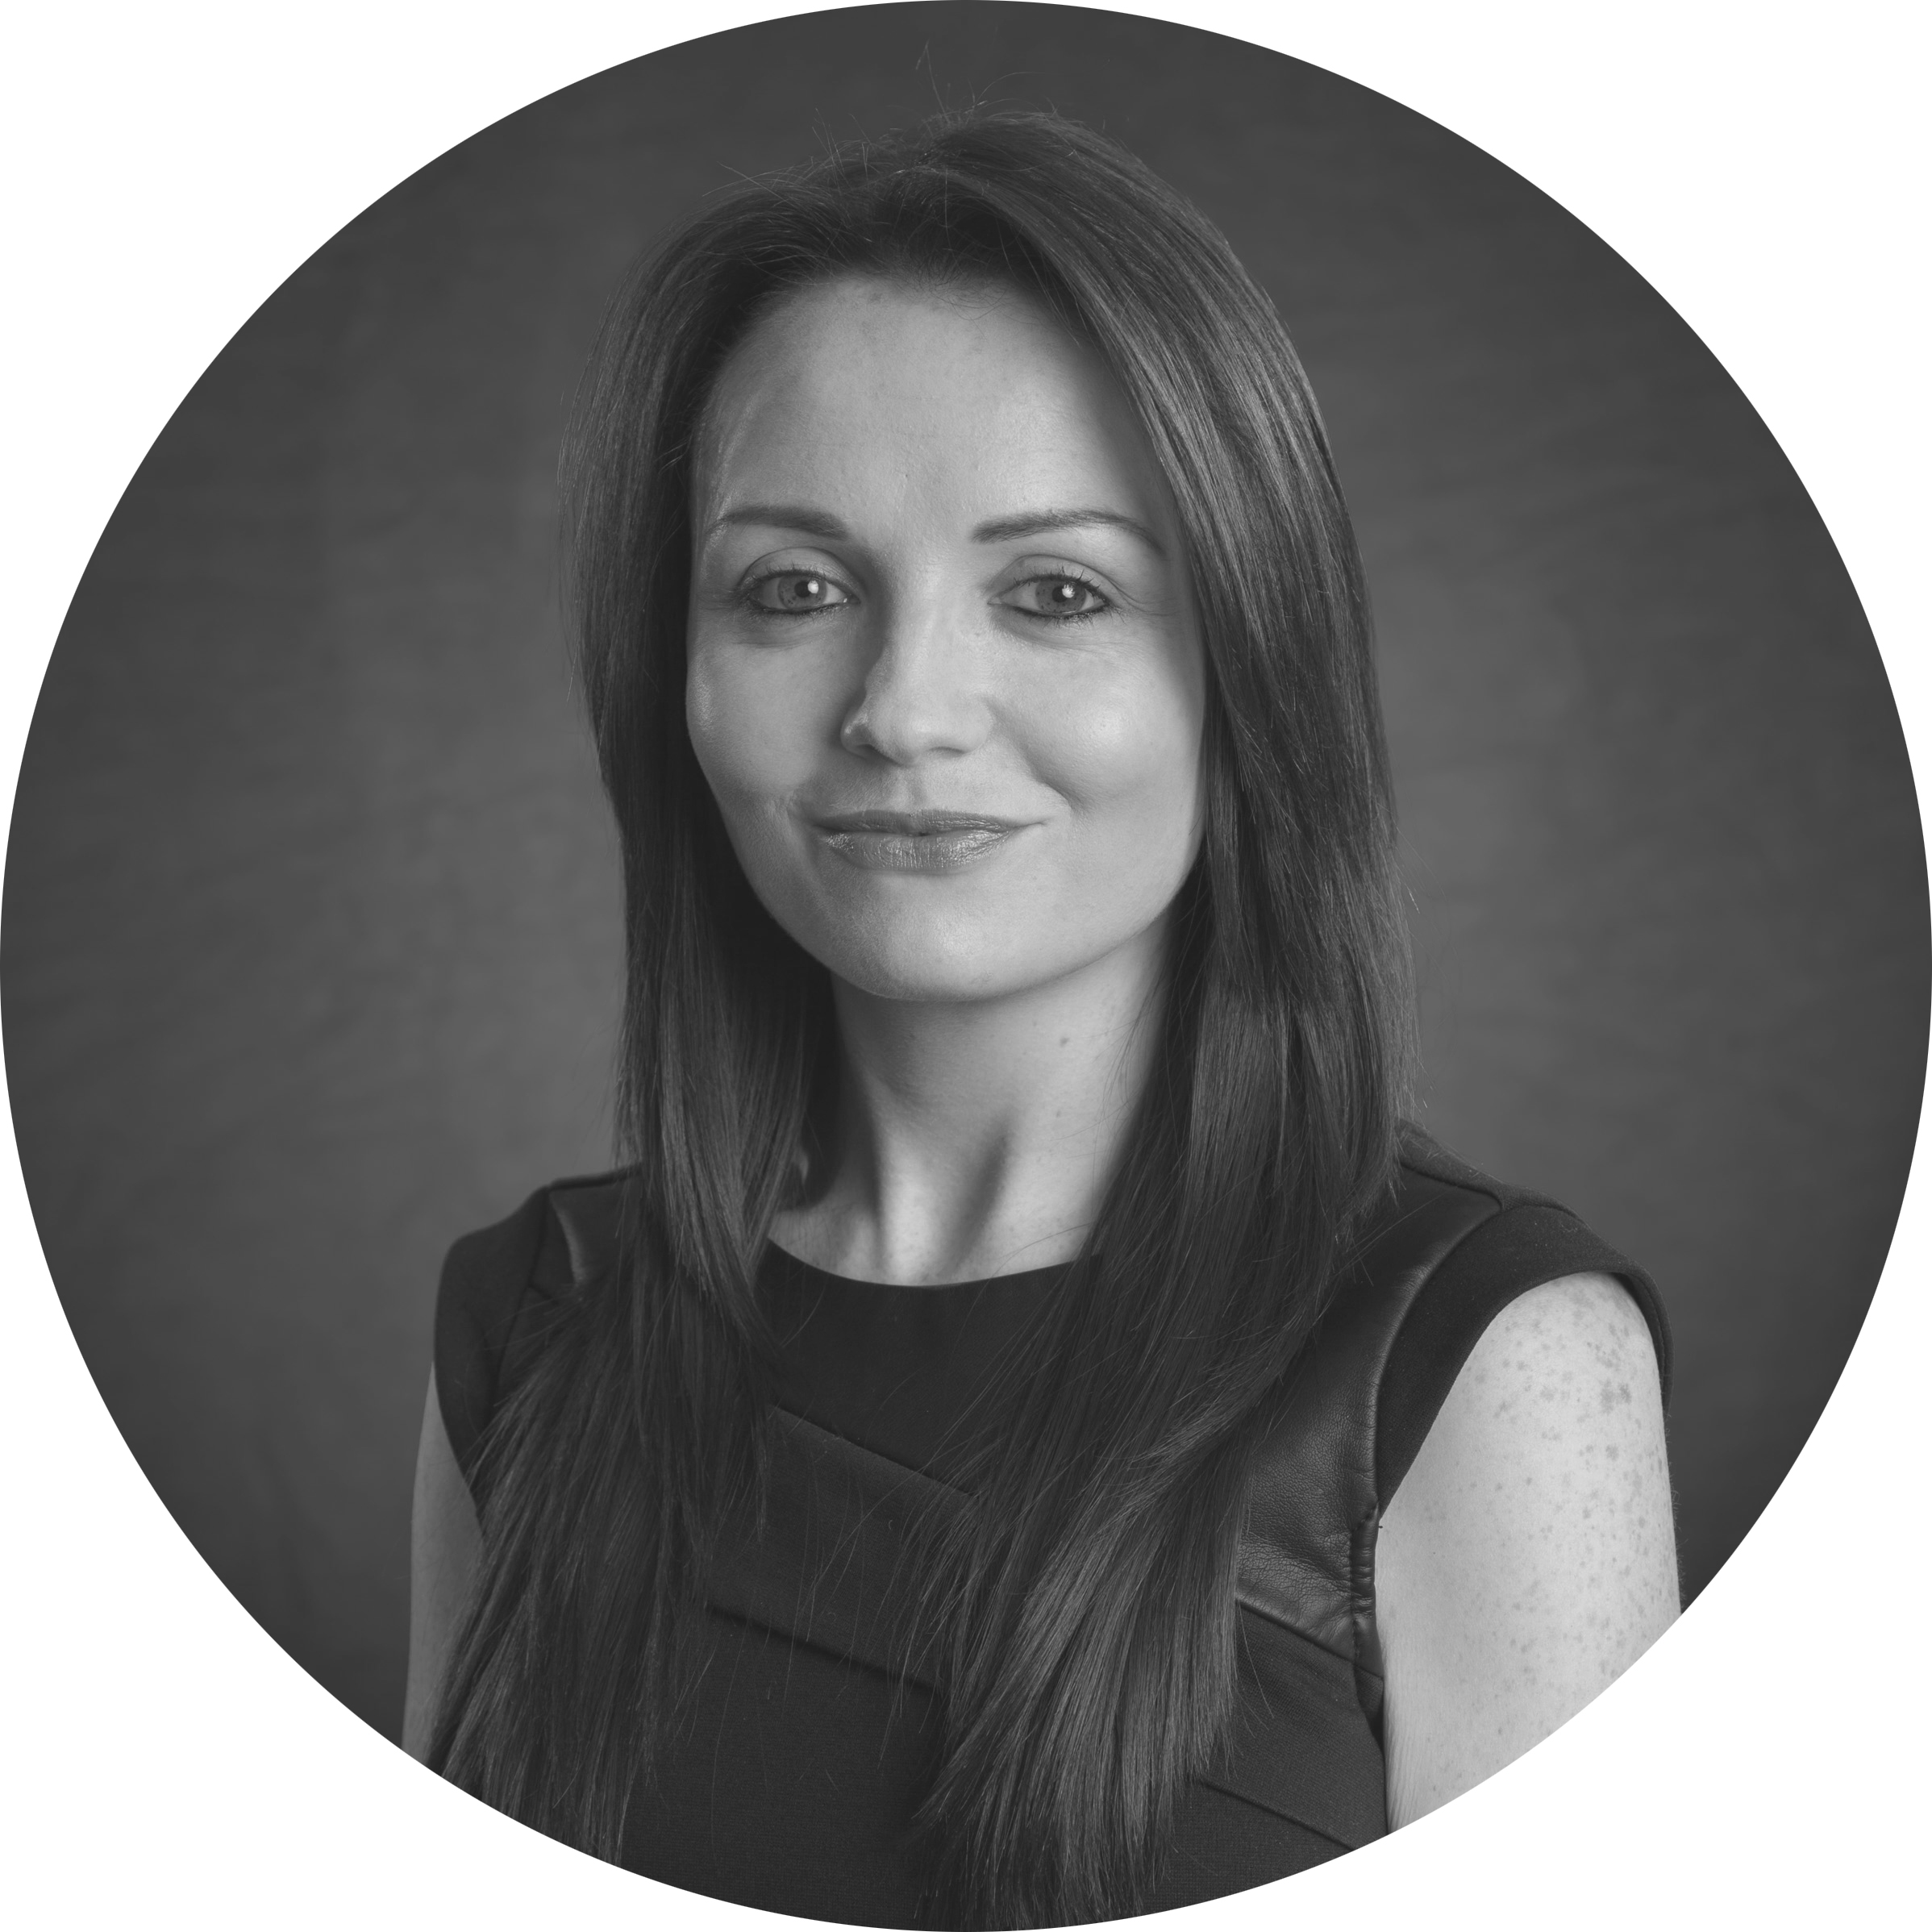 Kelly-Anne Byres from KBL Accounts Limited